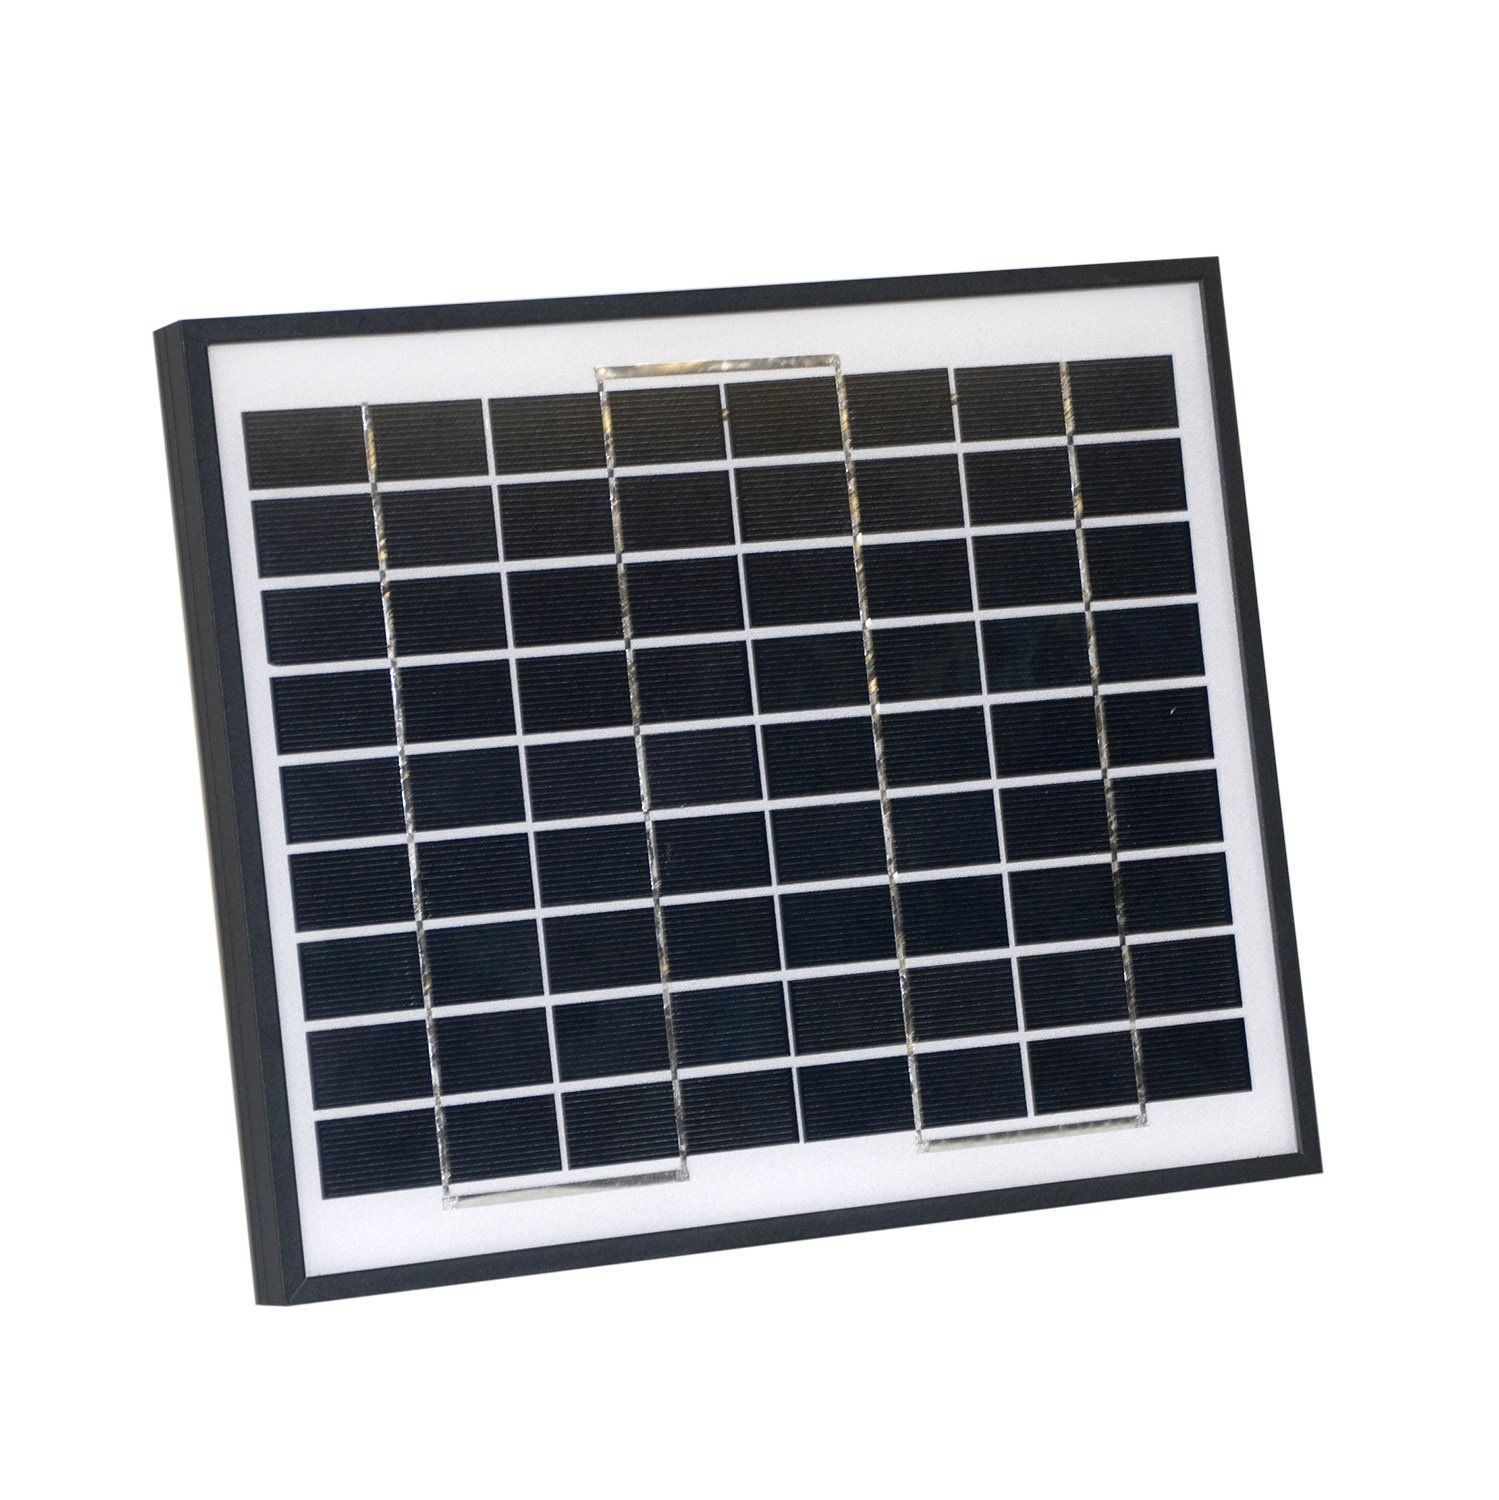 5 Watt Solar Panel Kit Fm121 For Mighty Mule Automatic Gate Openers See This Awesome Image Diy Solar Panels Solar Panel Kits Solar Powered Gate Opener